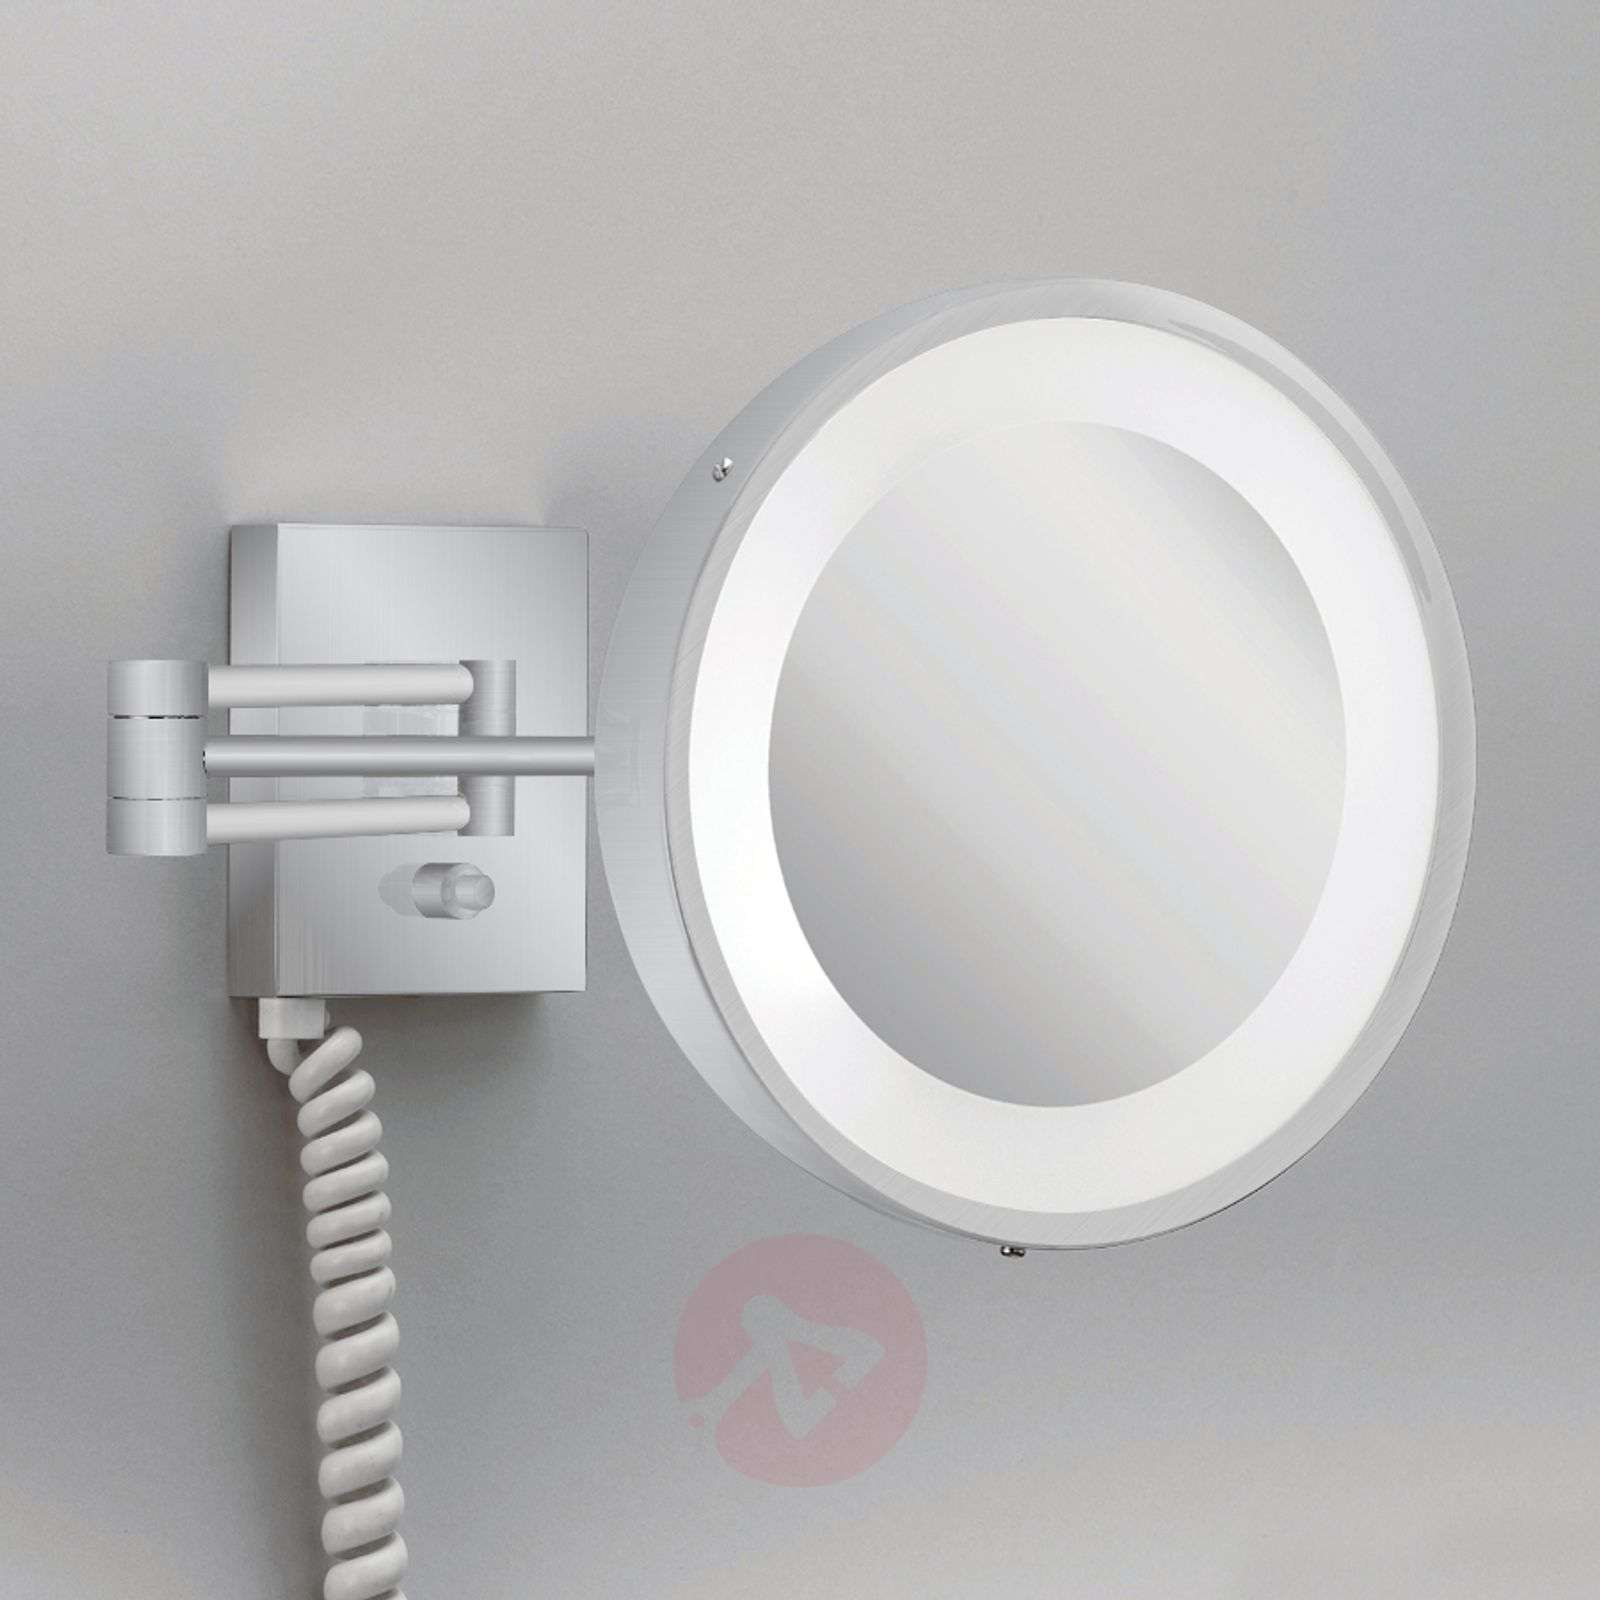 VISIO illuminated cosmetic wall mirror-2504193-01